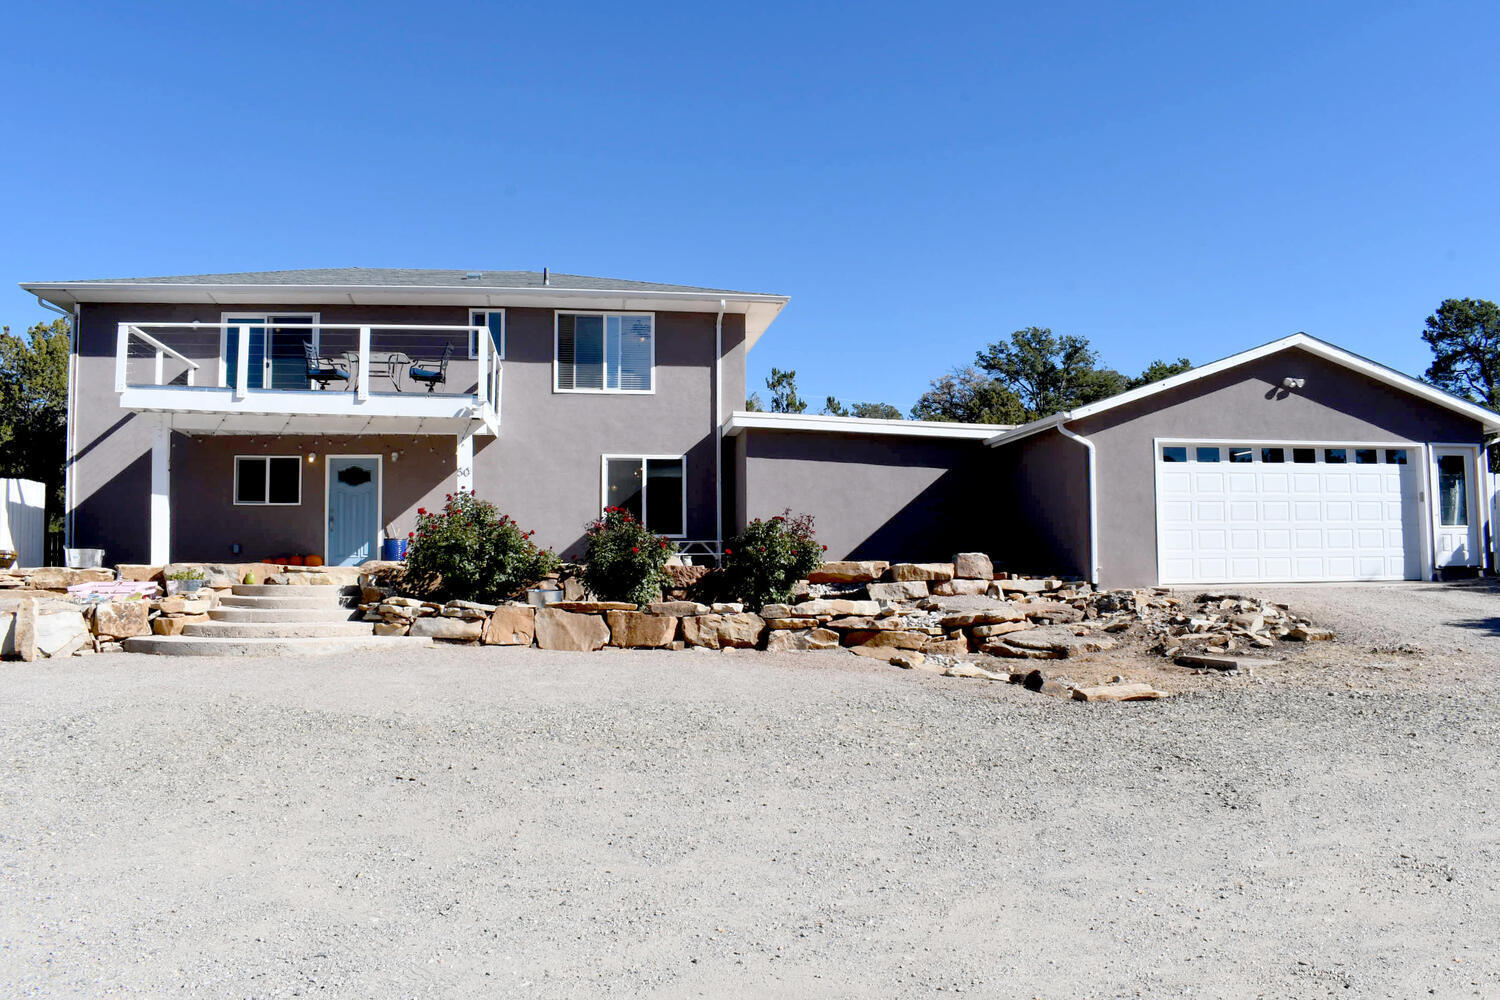 Come see this beautiful home that sits on 2.25 acres alongside the mountains in Cedar Crest. This home has stunning views all around. Inside you have 2,819 sq ft with 4 bedrooms and 3 baths, The master suite comes with a deck where you can catch more views of the Sandia's looking towards the west. The kitchen boasts beautiful cabinetry and granite countertops, this home has tons of room with 2 living areas and a loft upstairs. You will also have an oversized laundry/utility room and a detached 4 car garage in the back. This home has new stucco and new shingles and a new TPO section.